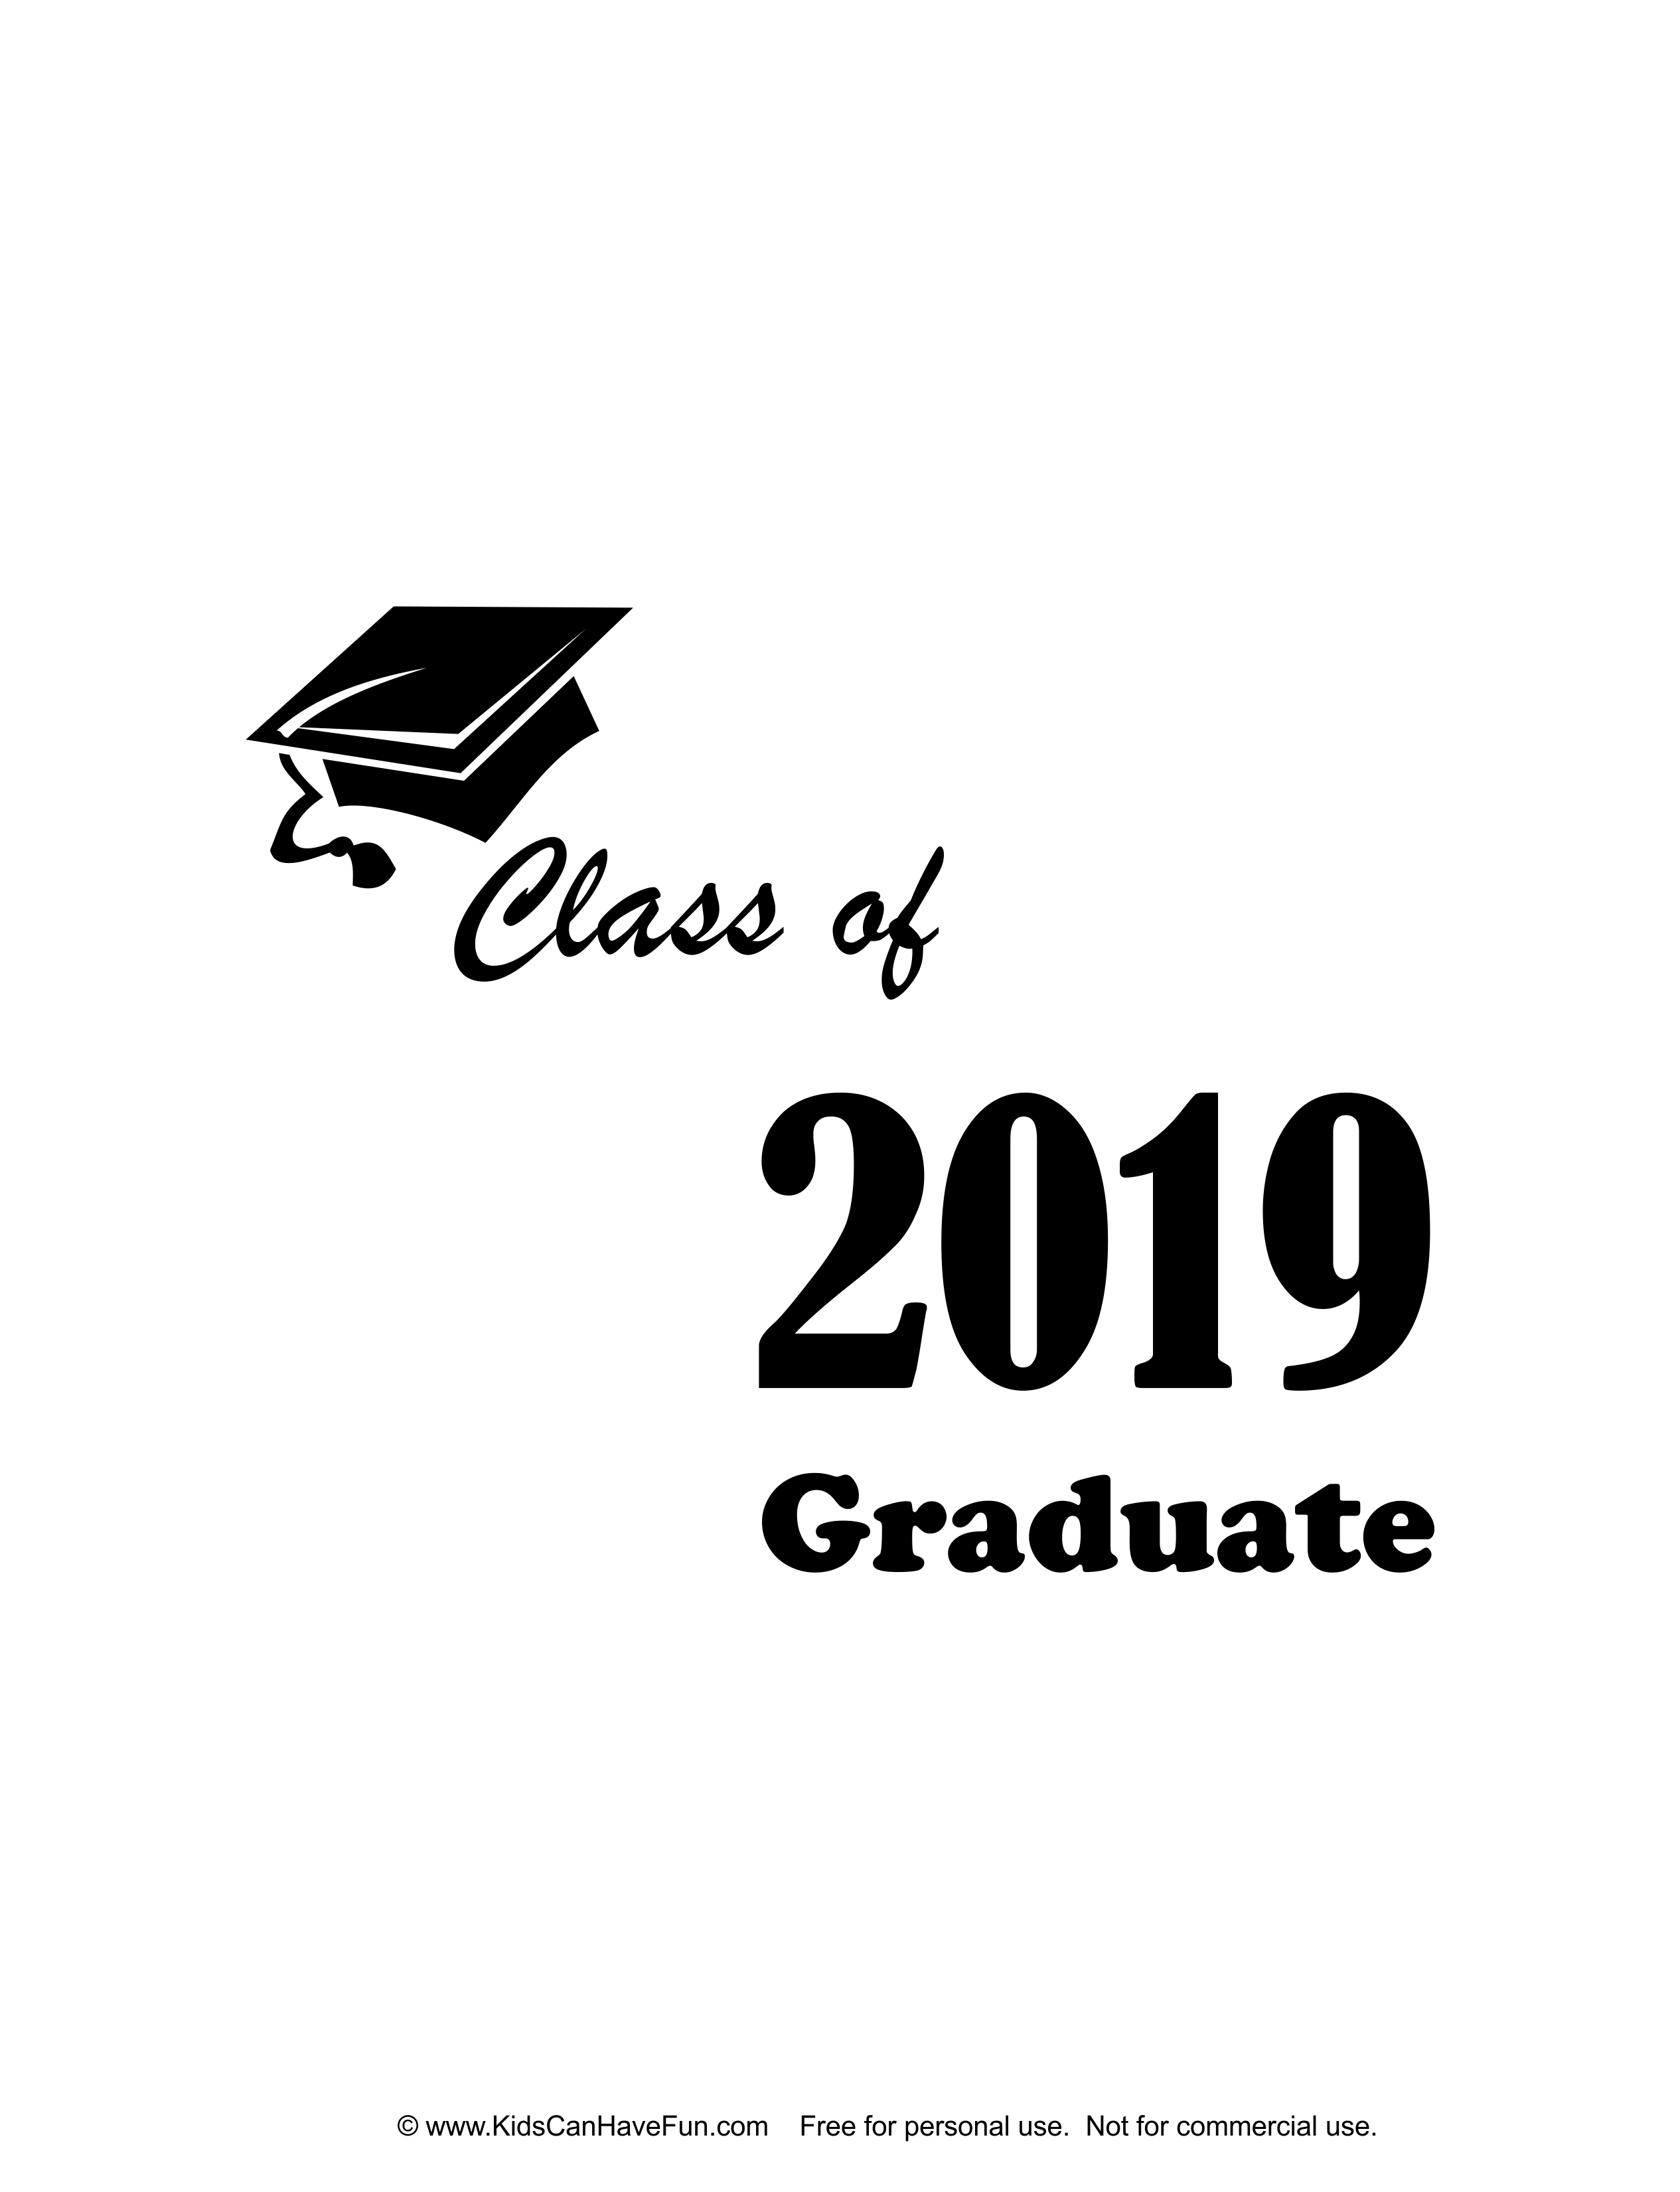 2019 Graduate T-Shirt Iron-on http://www.kidscanhavefun